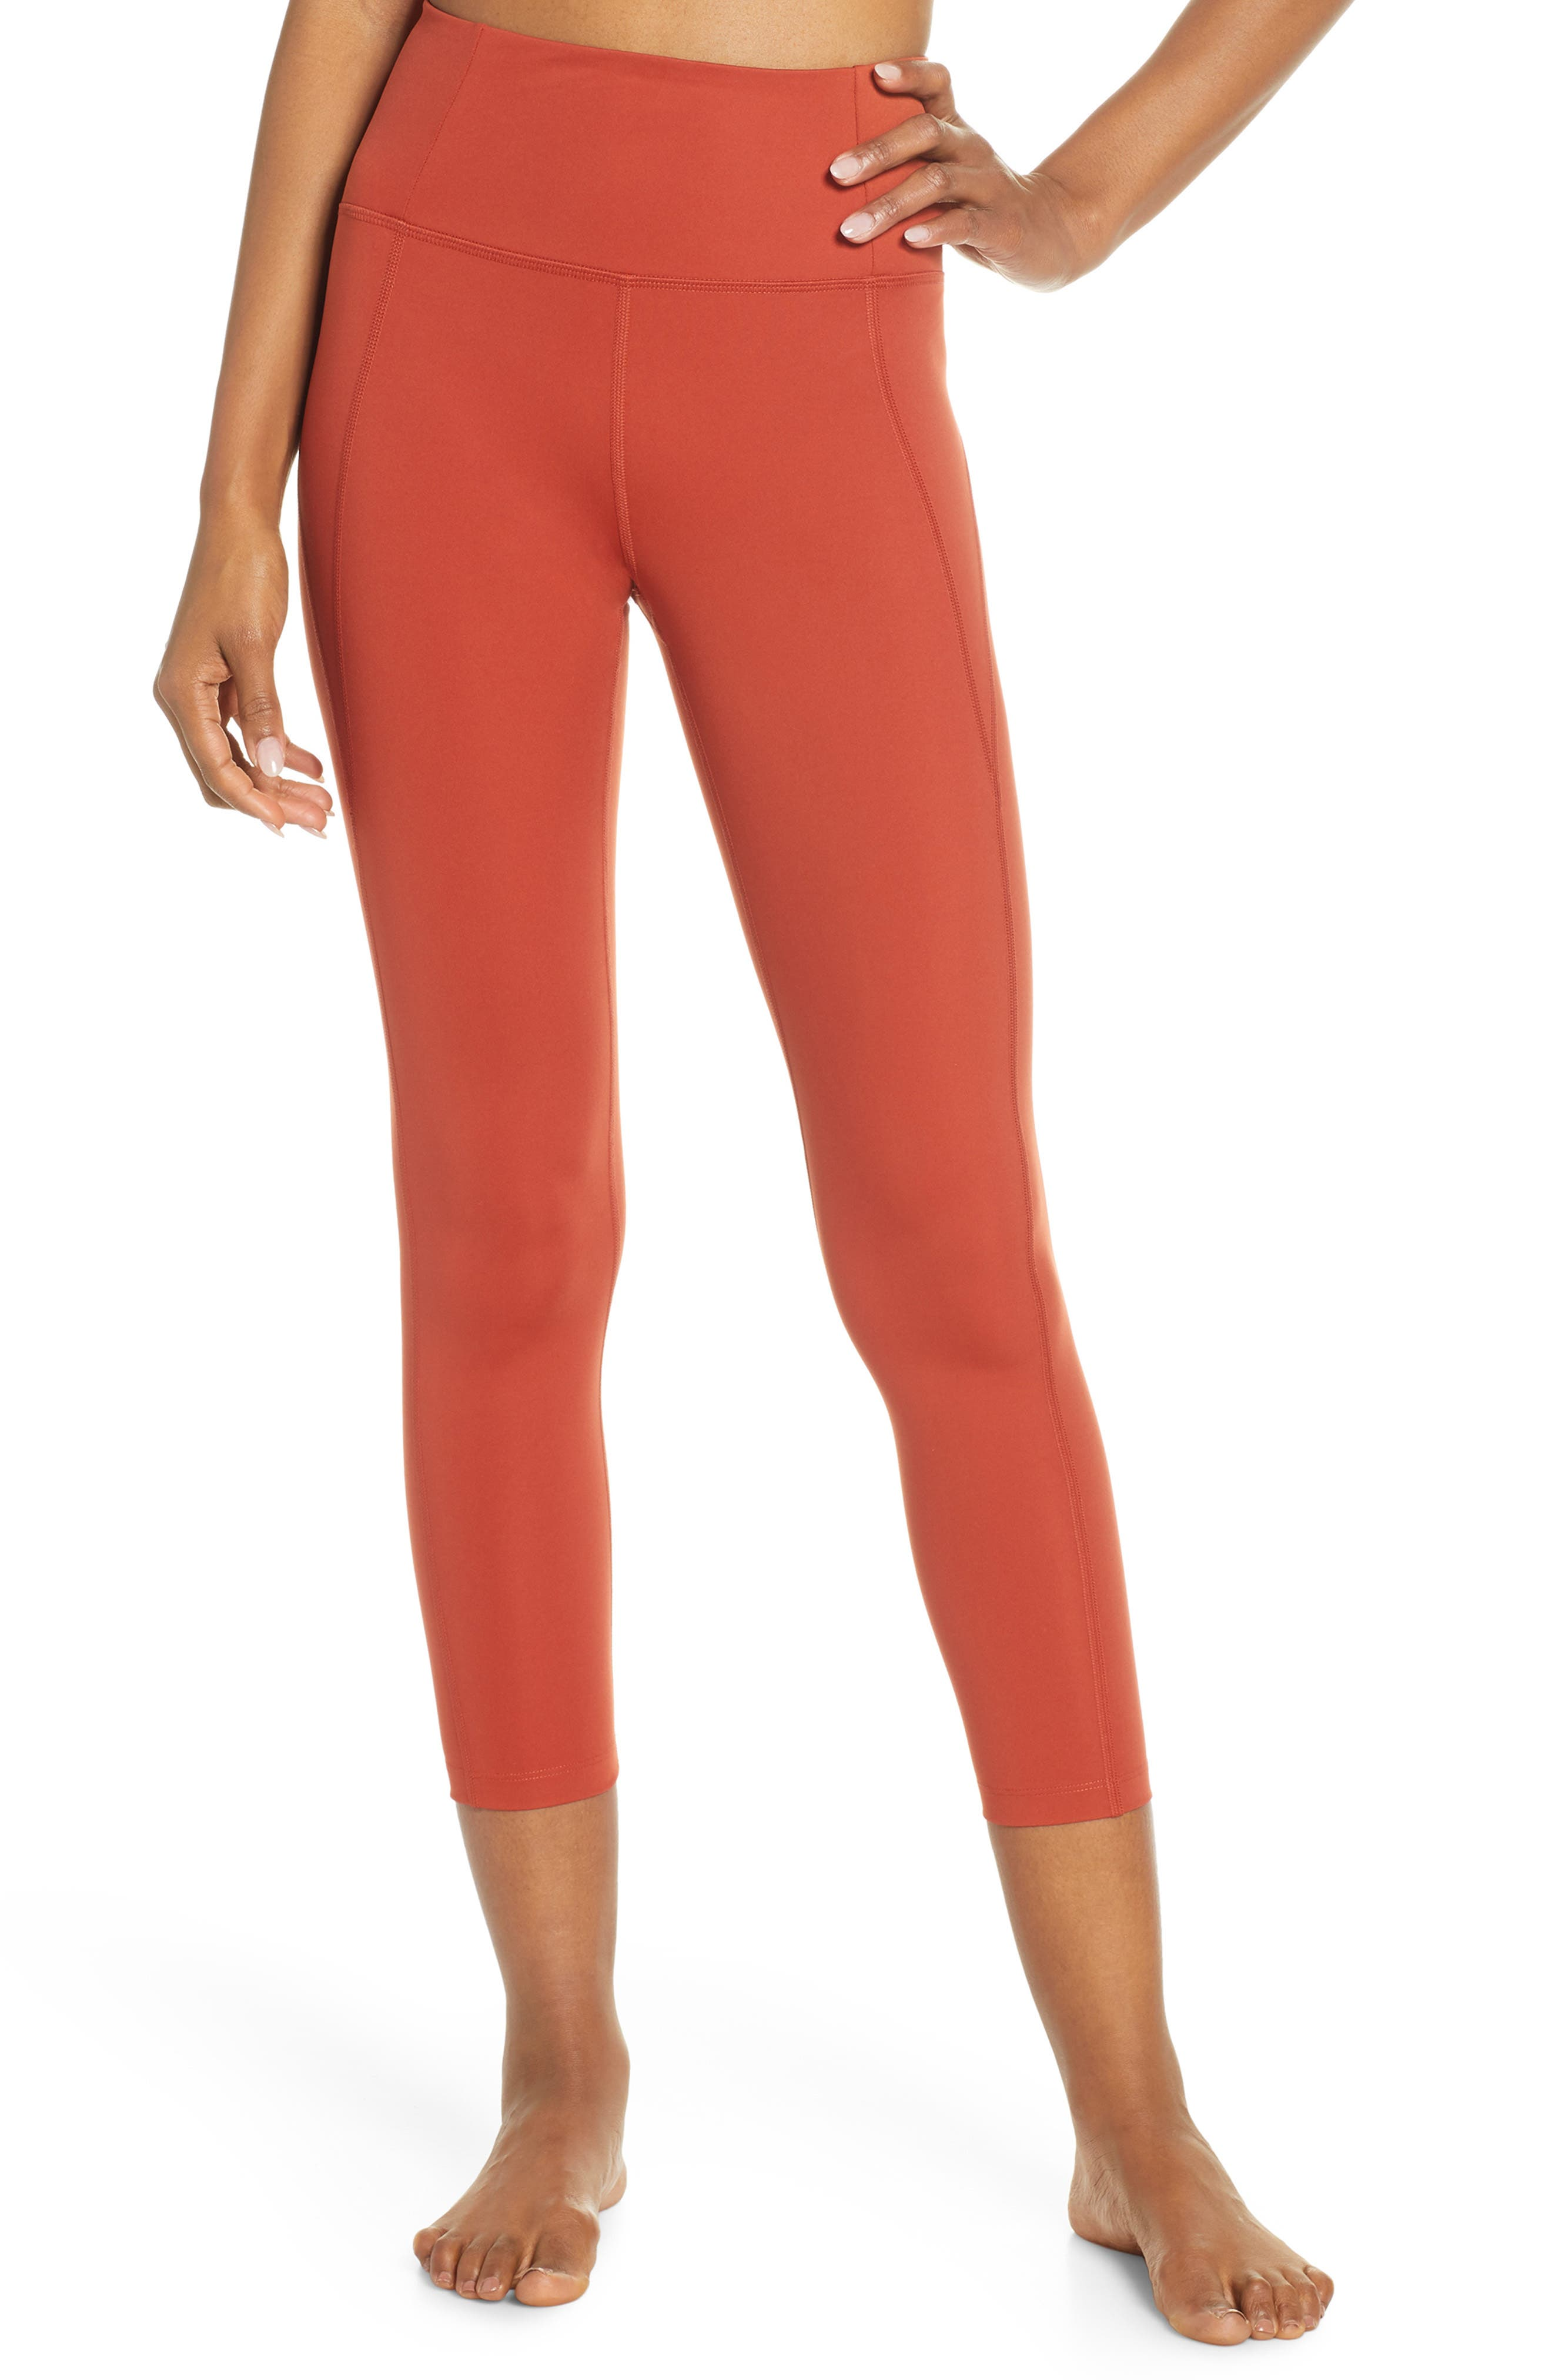 Girlfriend Collective High Waist 7/8 Leggings, Red